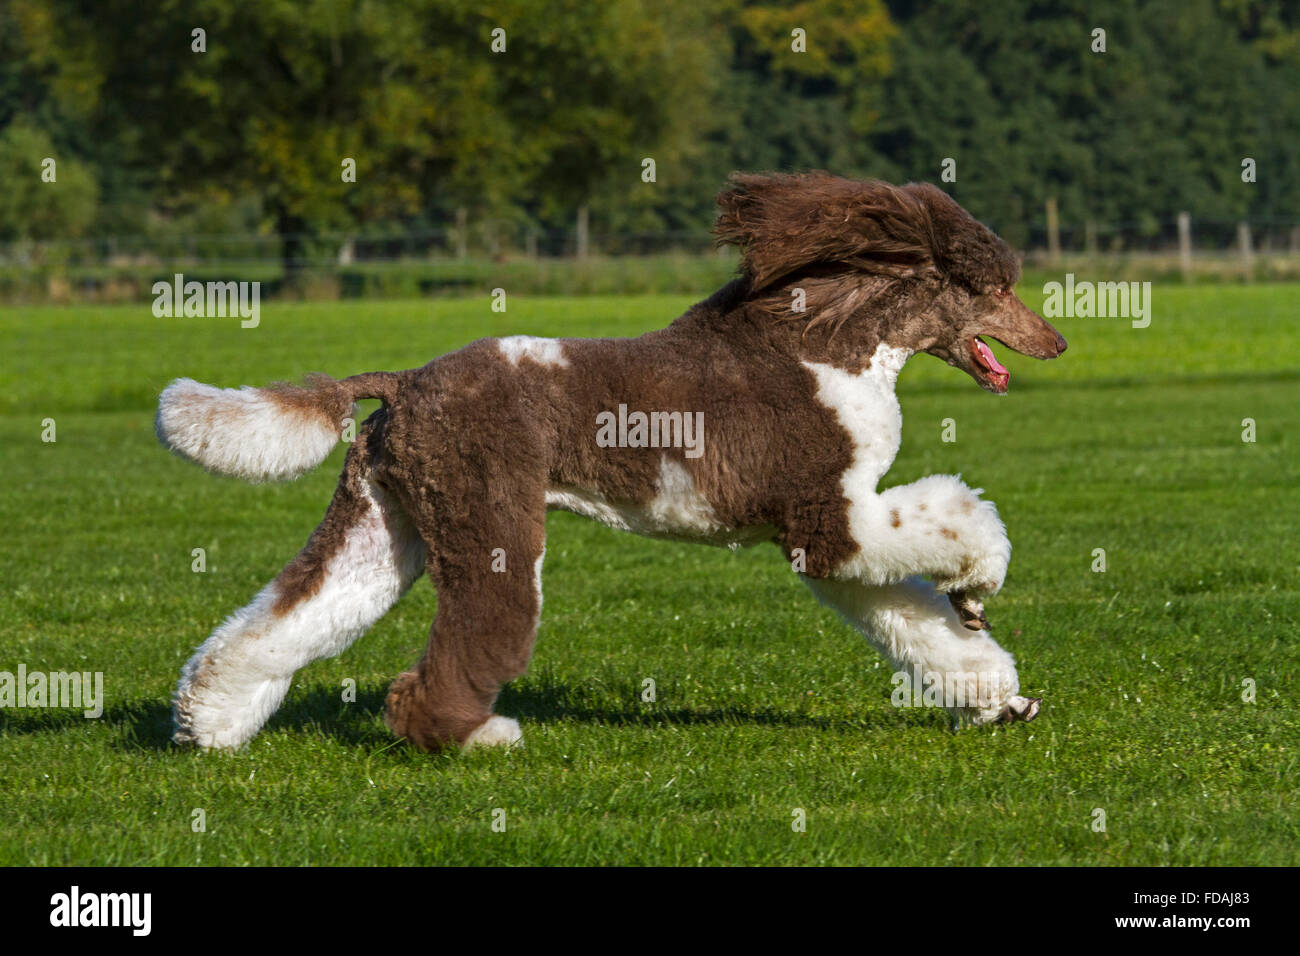 Harlequin poodle (Canis lupus familiaris) running in garden Stock Photo